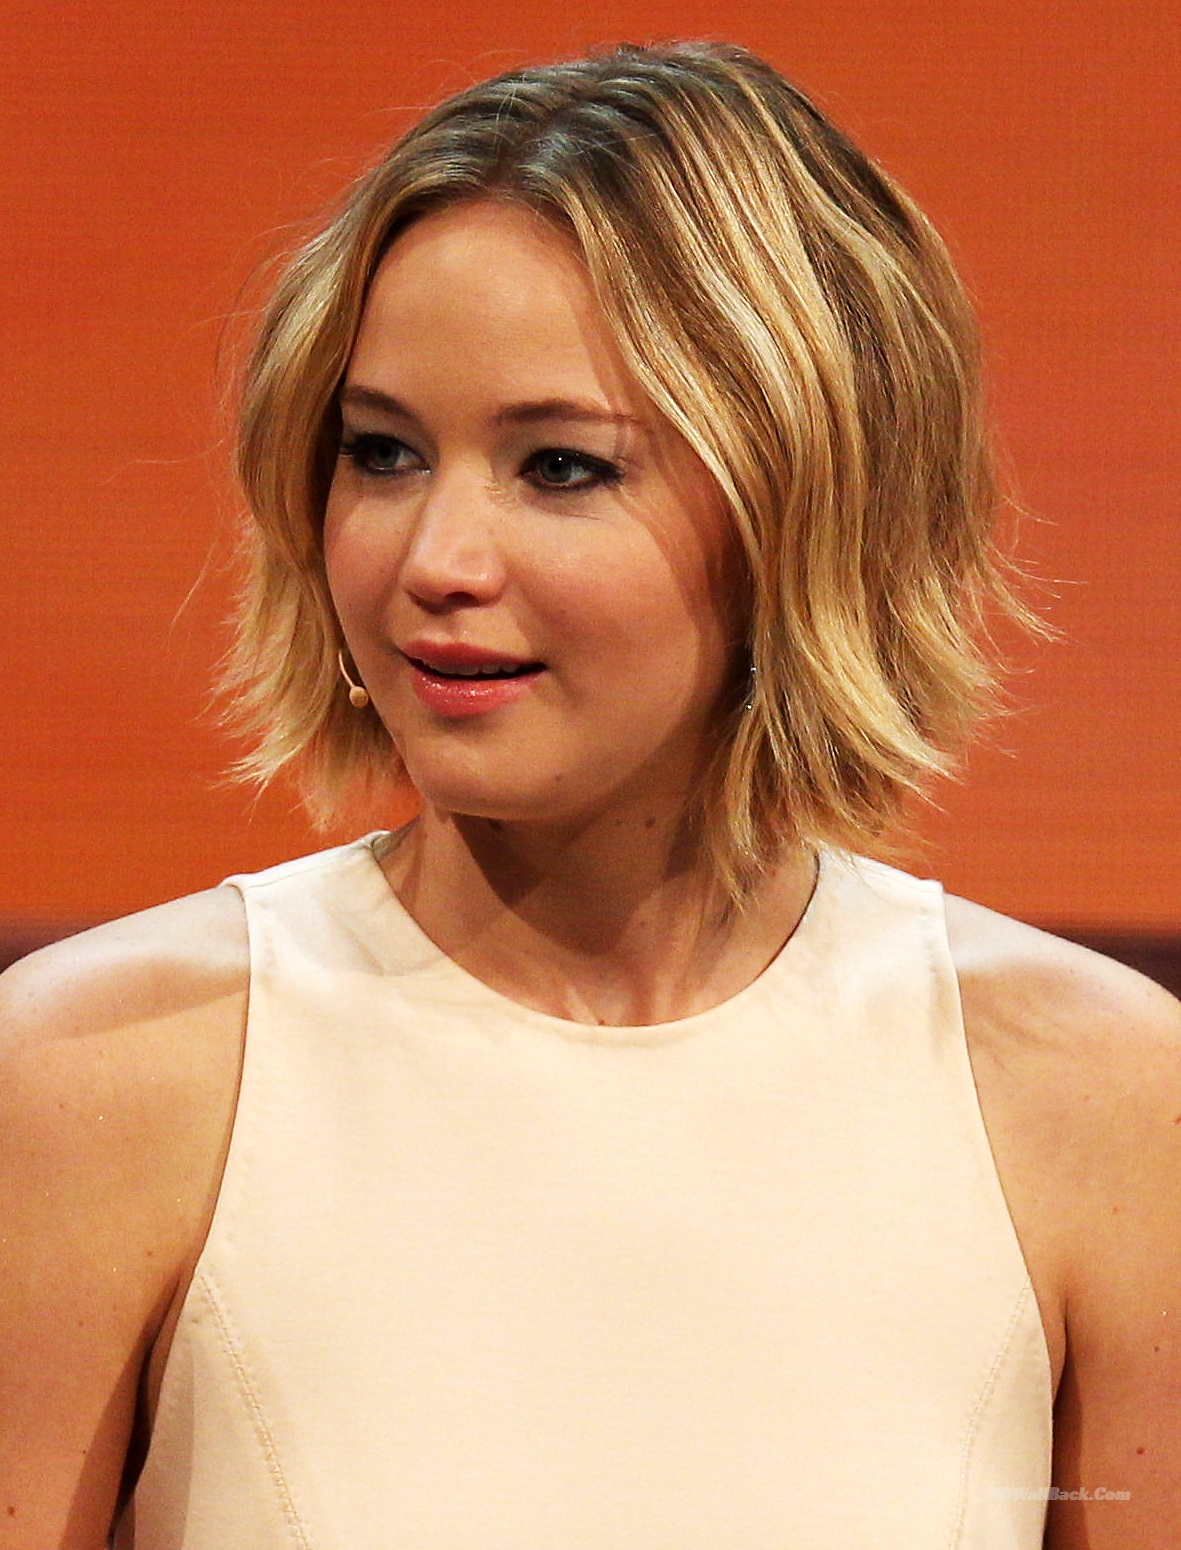 Jennifer Lawrence hd images